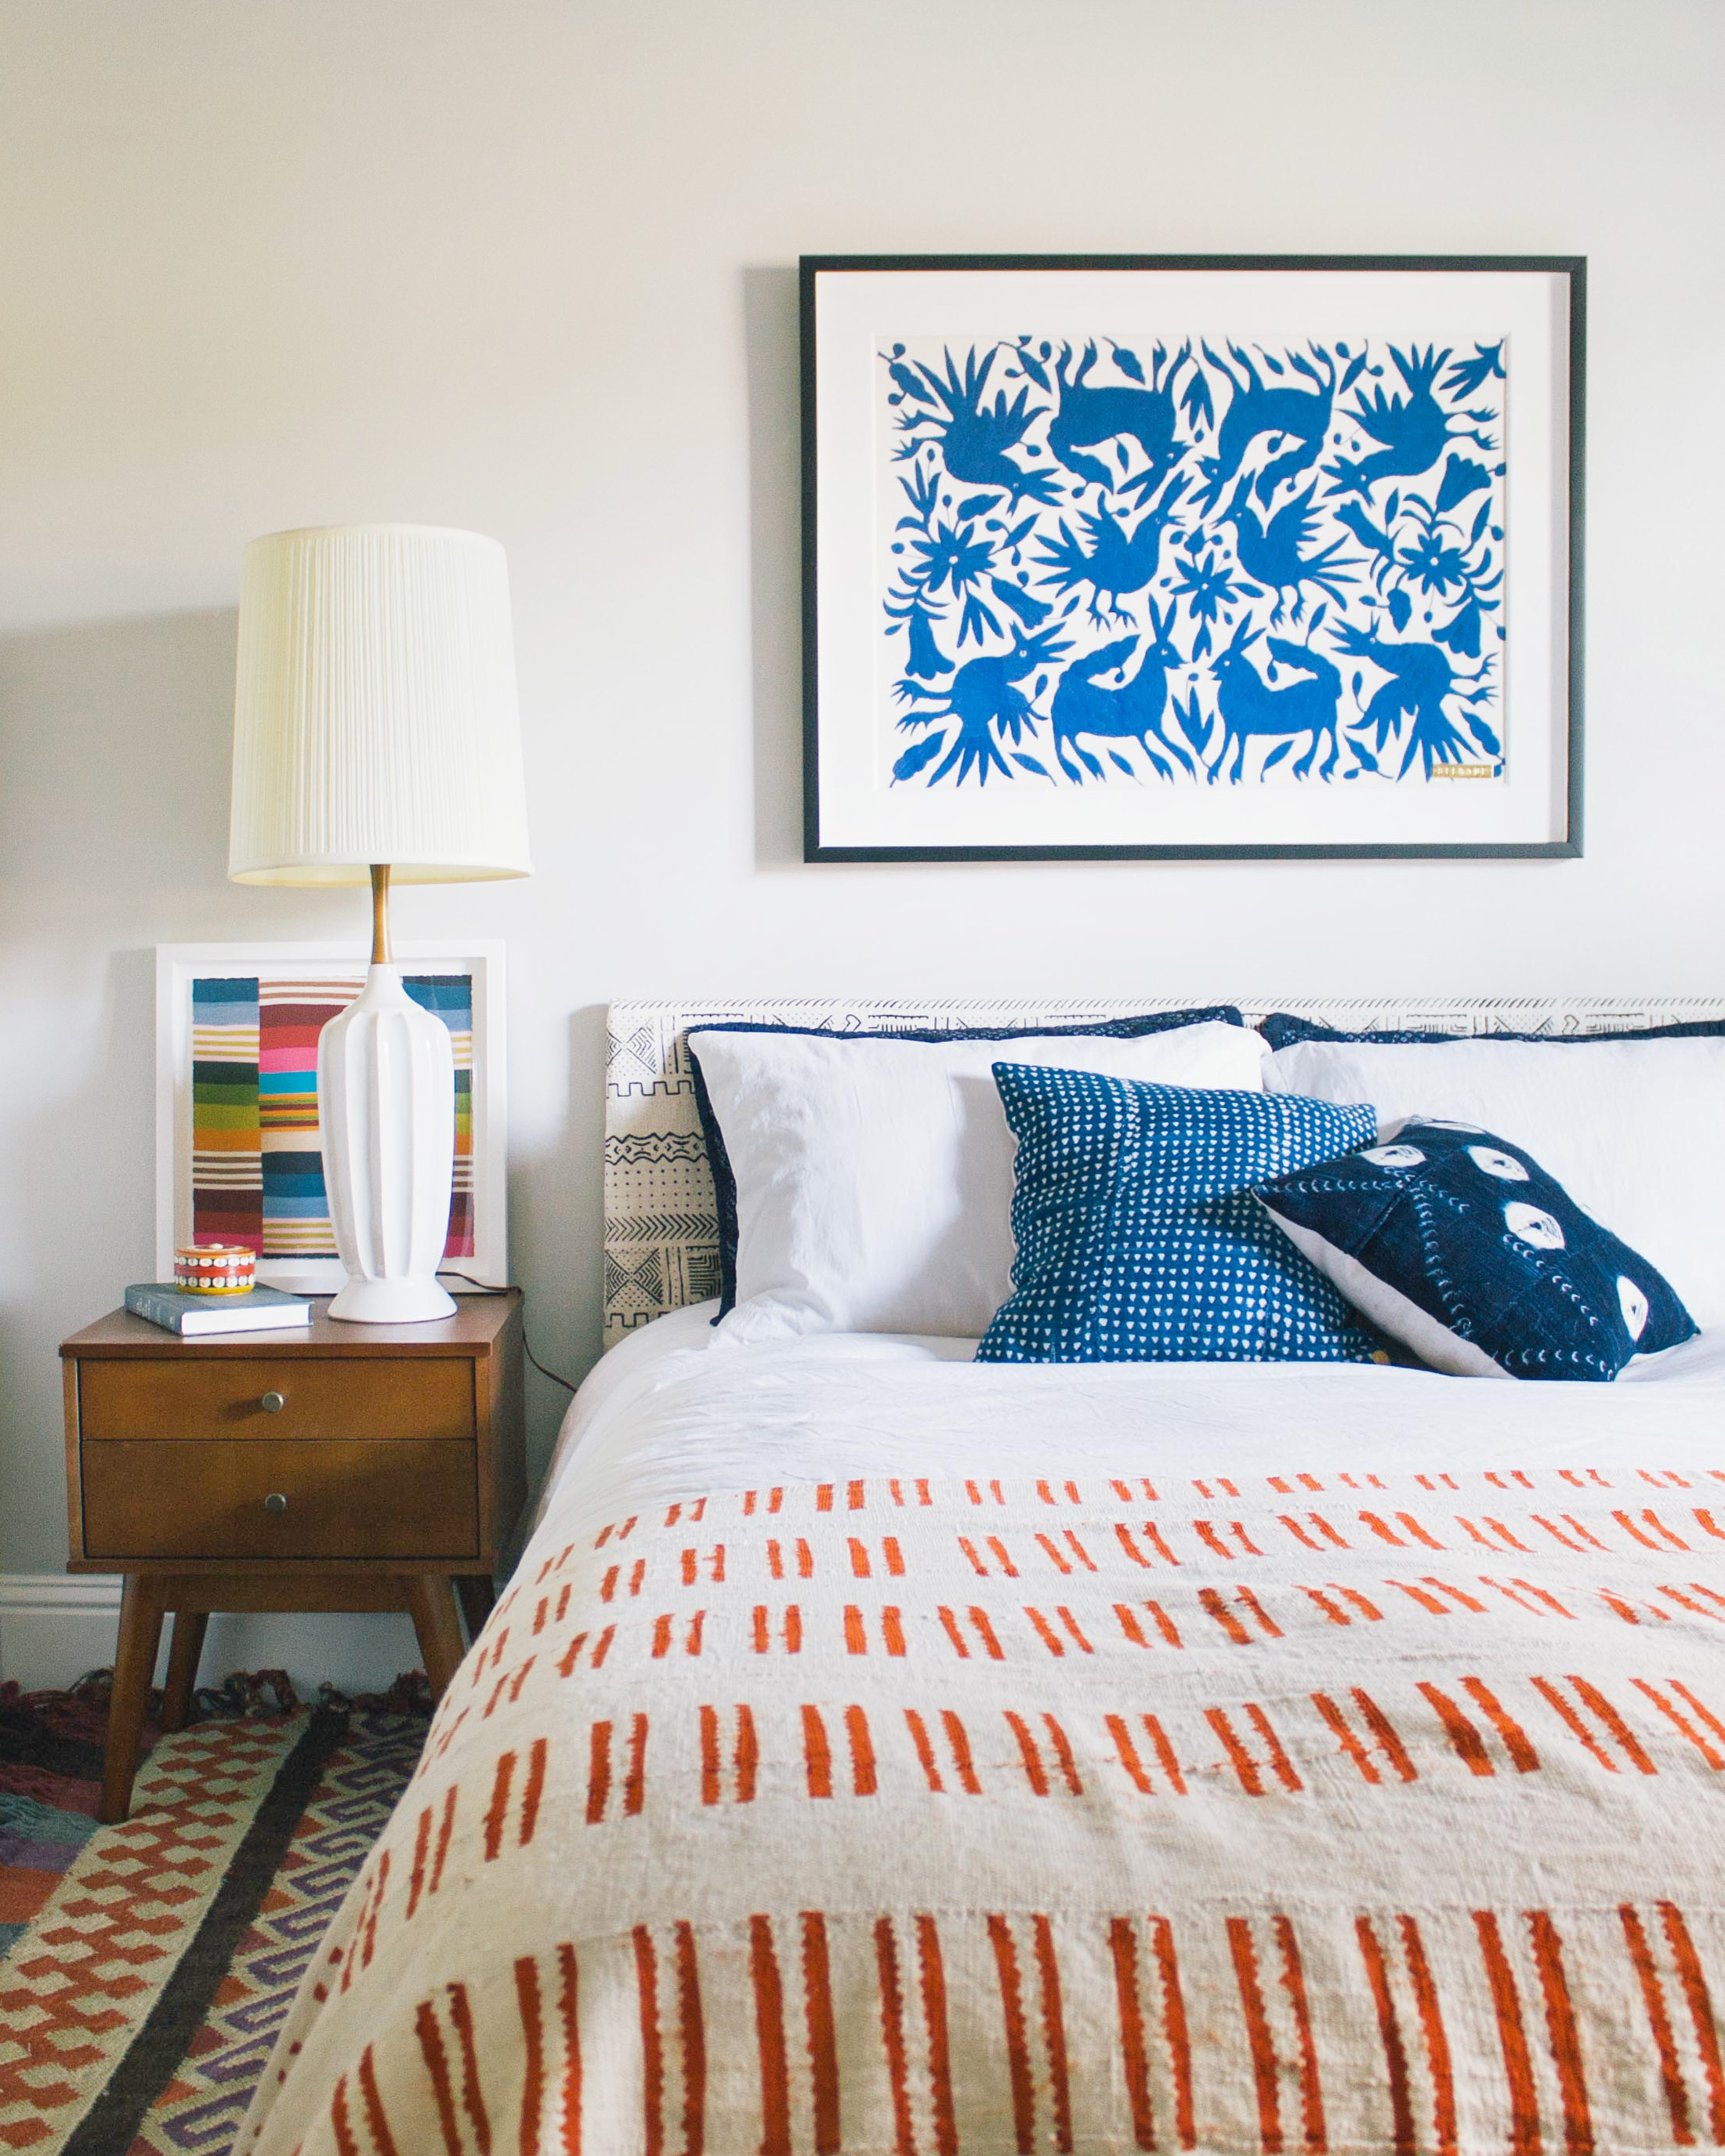 OLD BRAND NEW • SPICE UP YOUR BEDROOM WITH ART AND TEXTILES FROM ST. FRANK